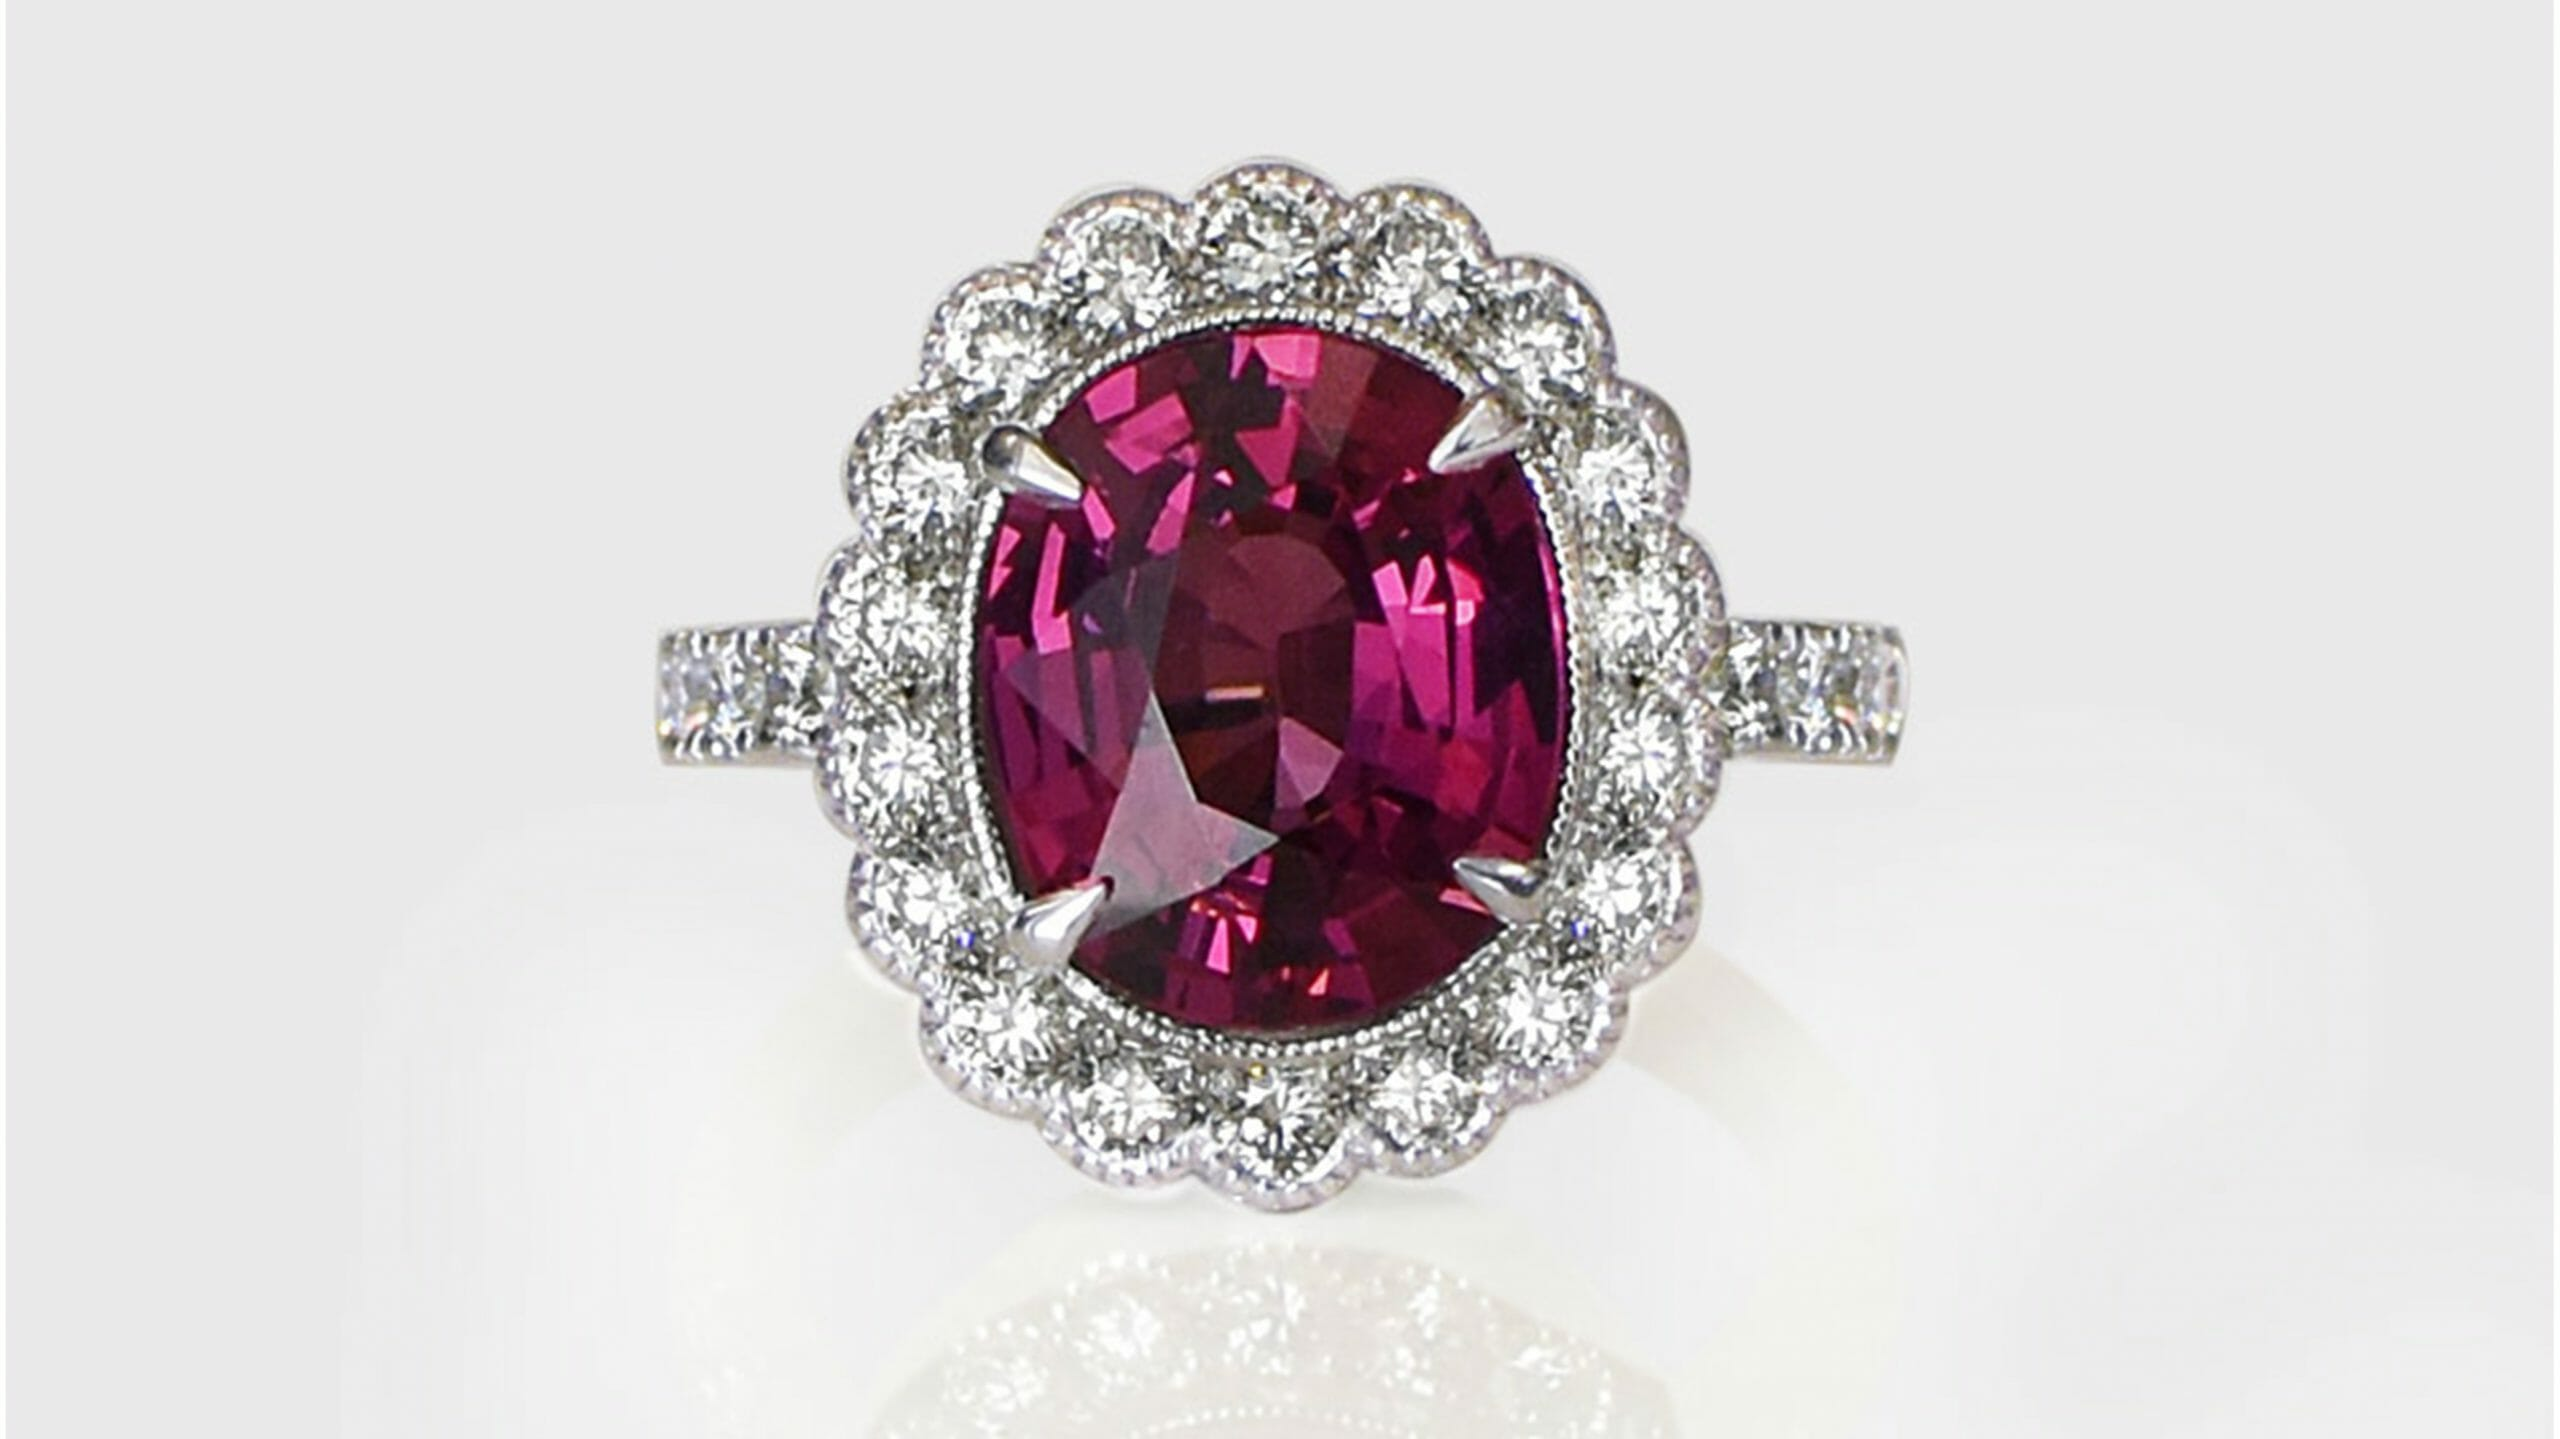 rhodolite & diamond halo ring | 18 carat handcrafted rhodolite gemstone and diamond halo ring